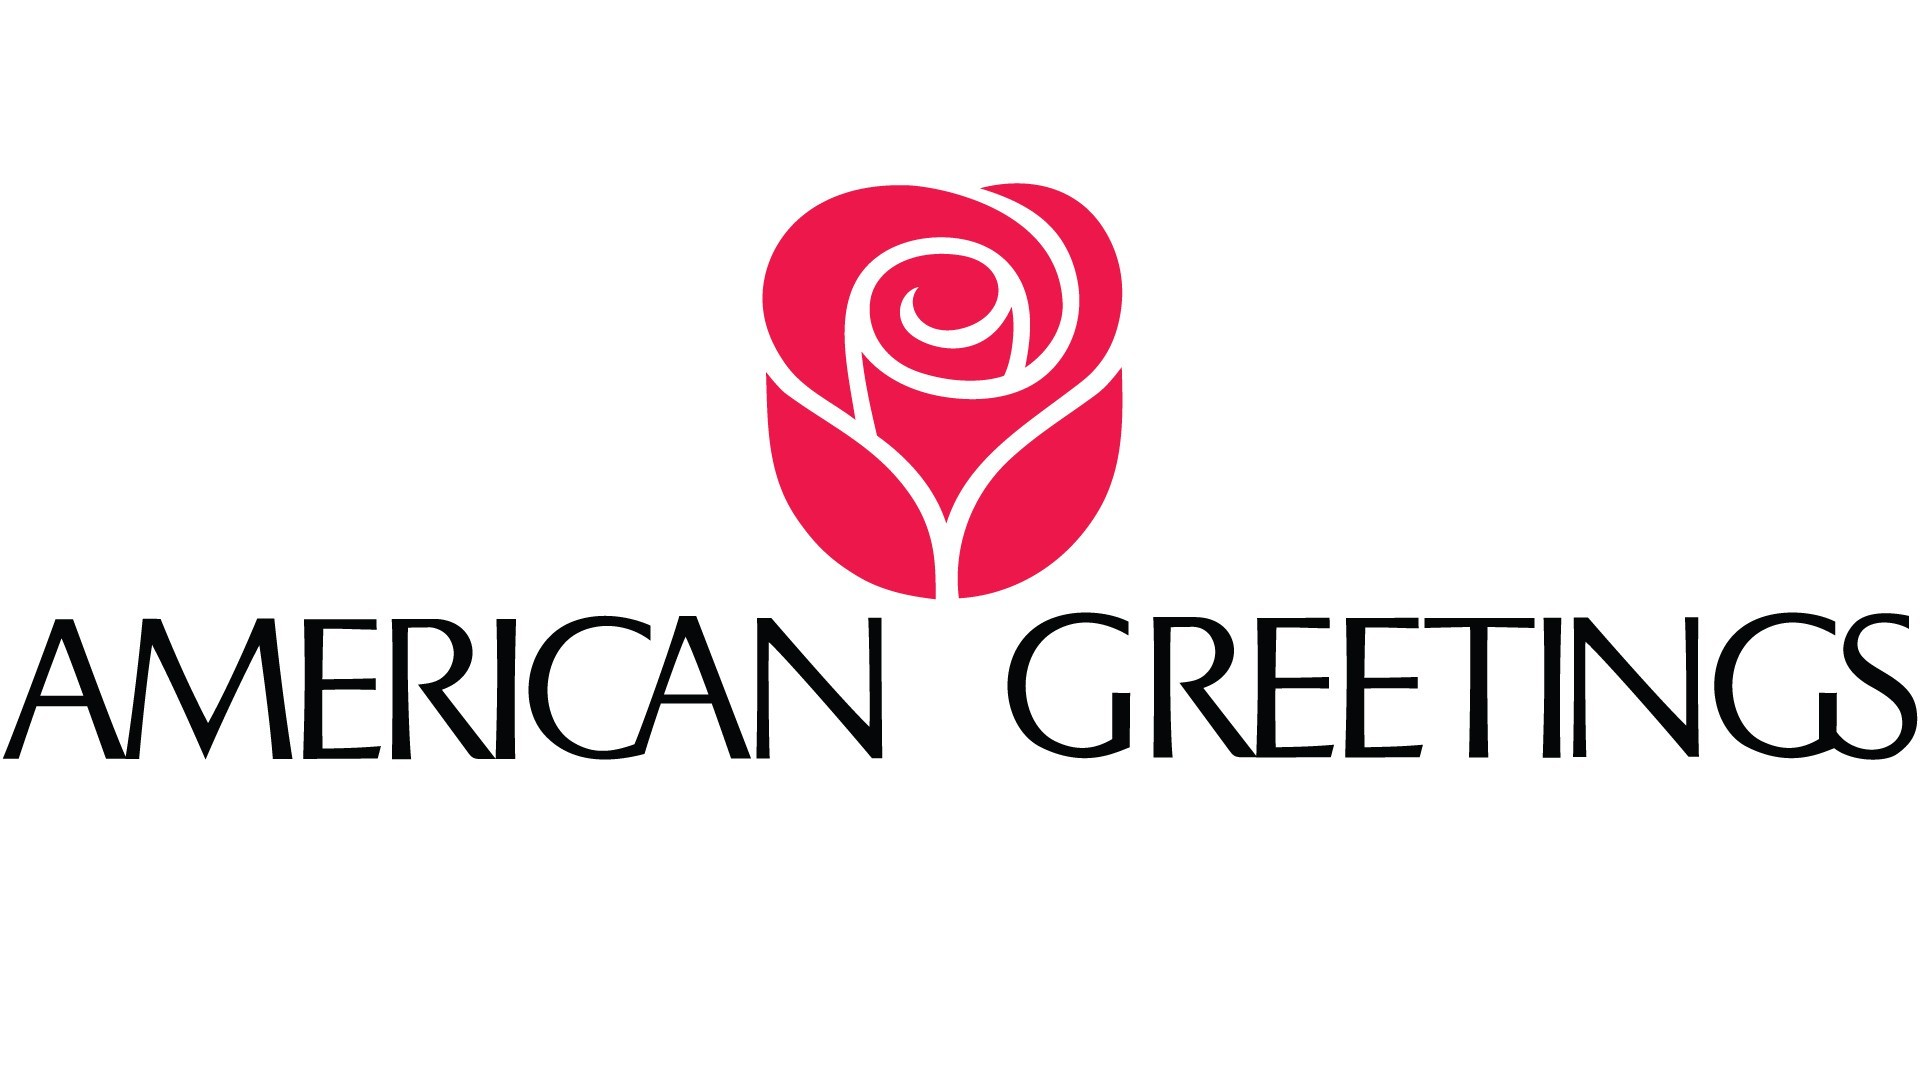 American Greetings Wallpaper Images Greetings Card Design Simple